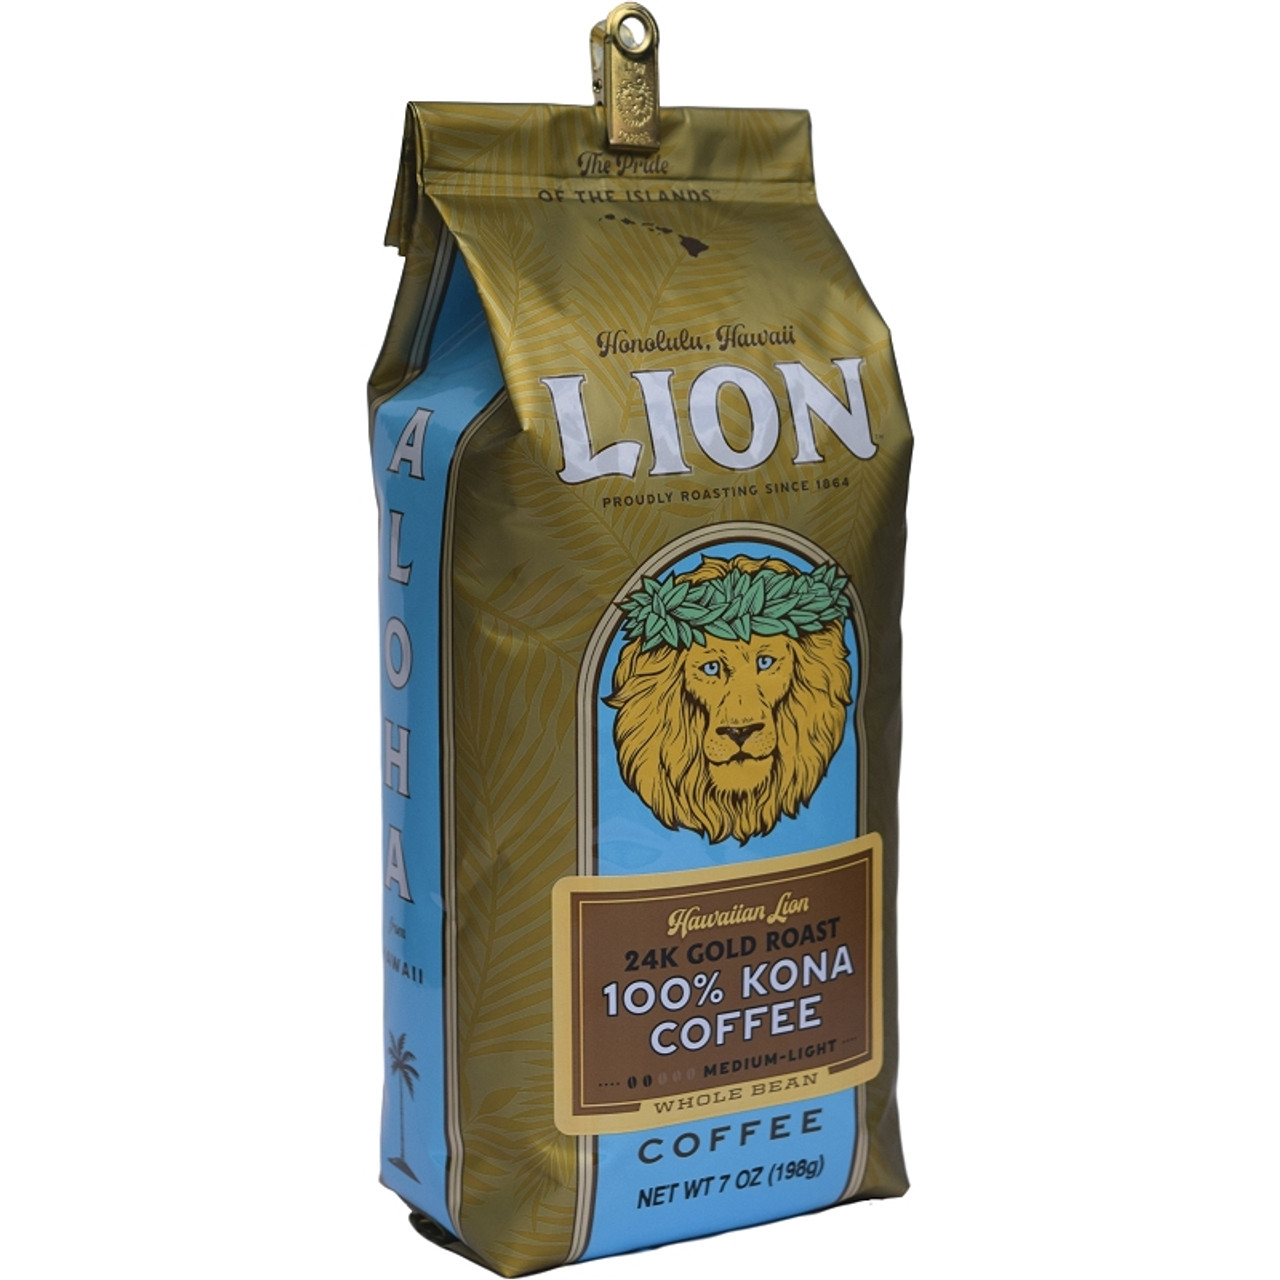 hawaiian lion 24k gold roast kona coffee